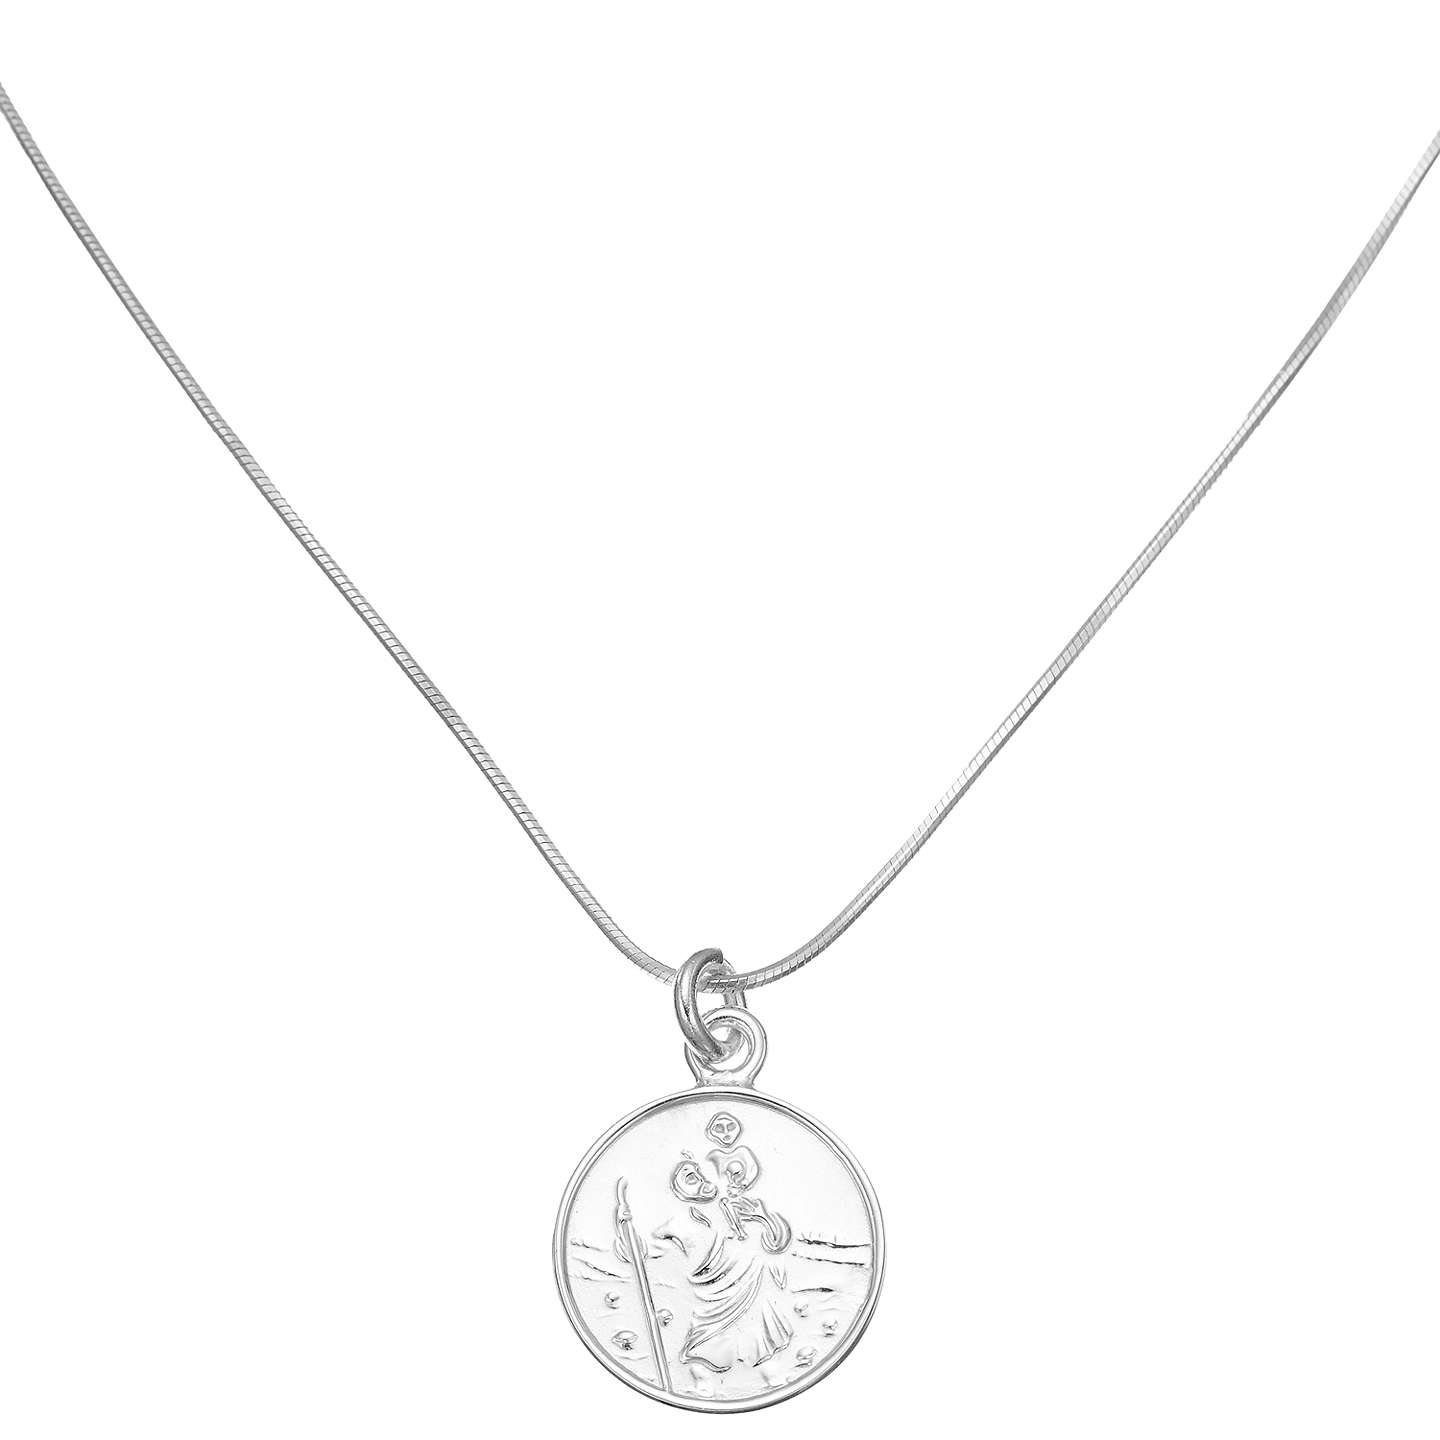 John lewis sterling silver st christopher necklace at john lewis buyjohn lewis sterling silver st christopher necklace online at johnlewis aloadofball Images